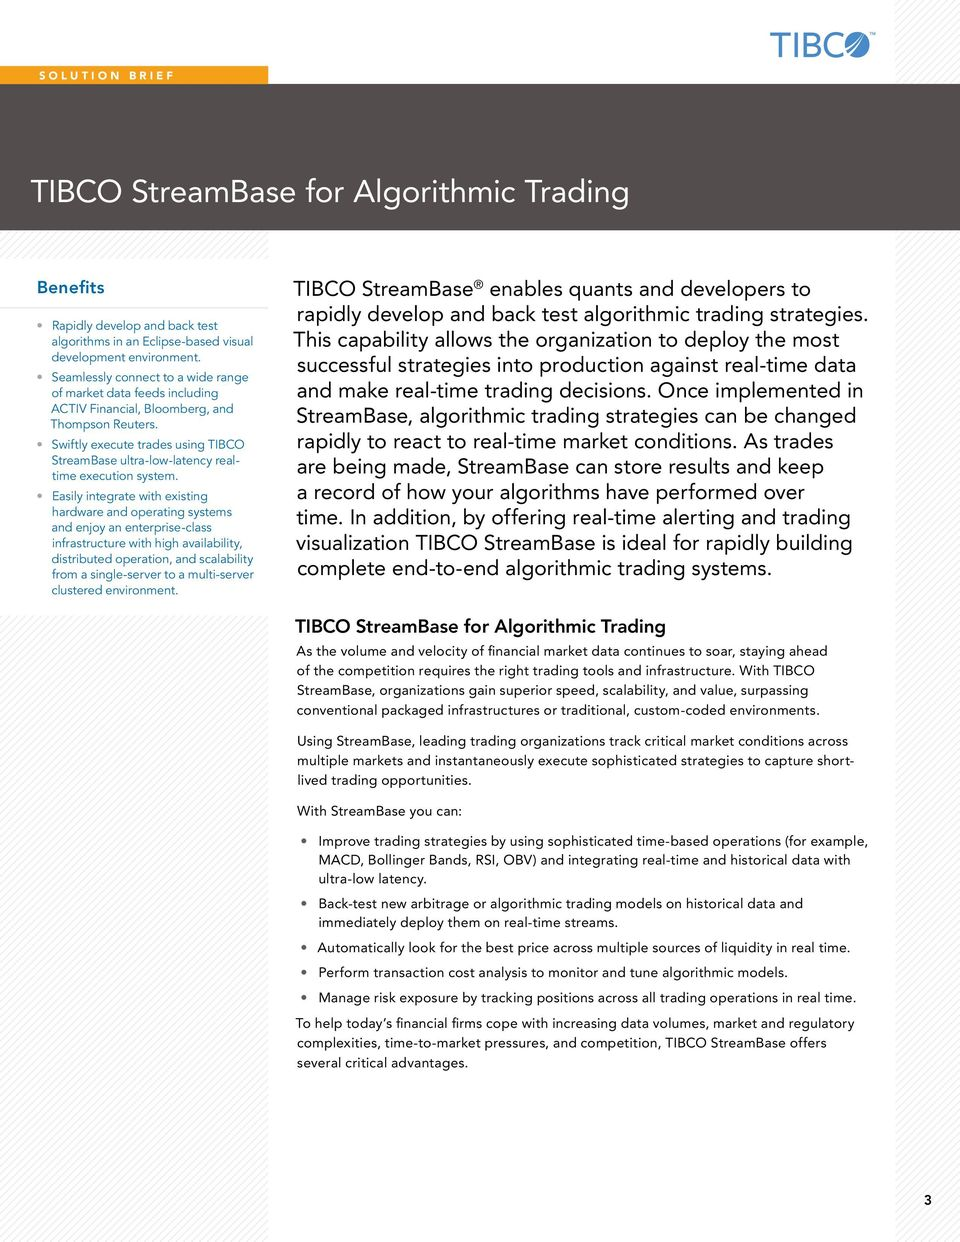 Swiftly execute trades using TIBCO StreamBase ultra-low-latency realtime execution system.